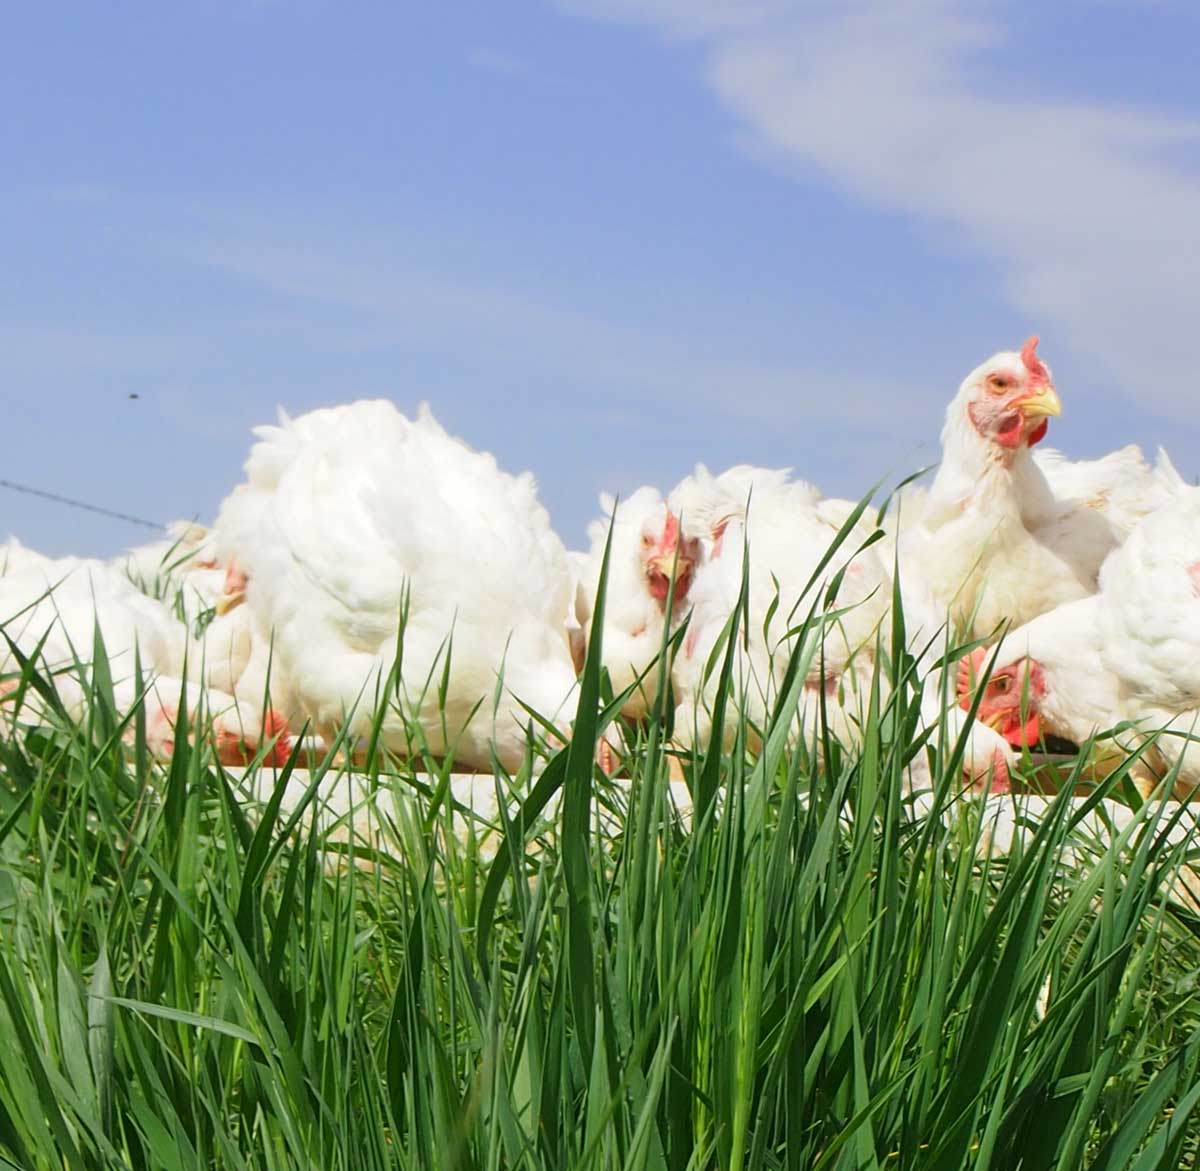 Pastured-Poultry White Birds on Roost